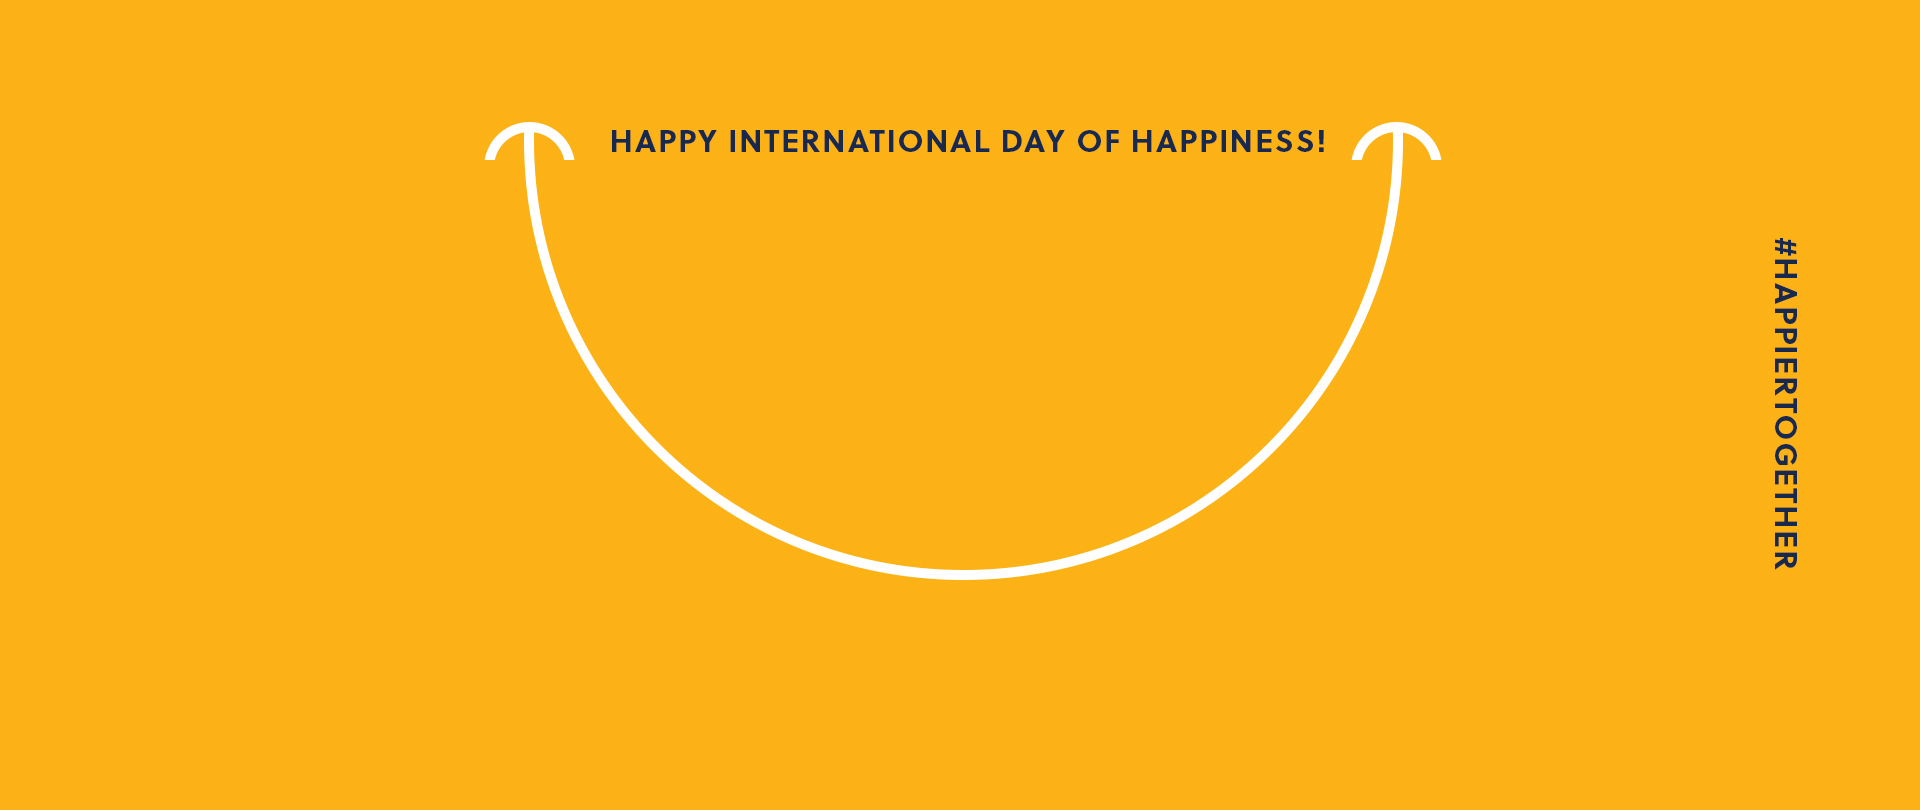 int-day-of-happiness-story-banner-desktop.jpg